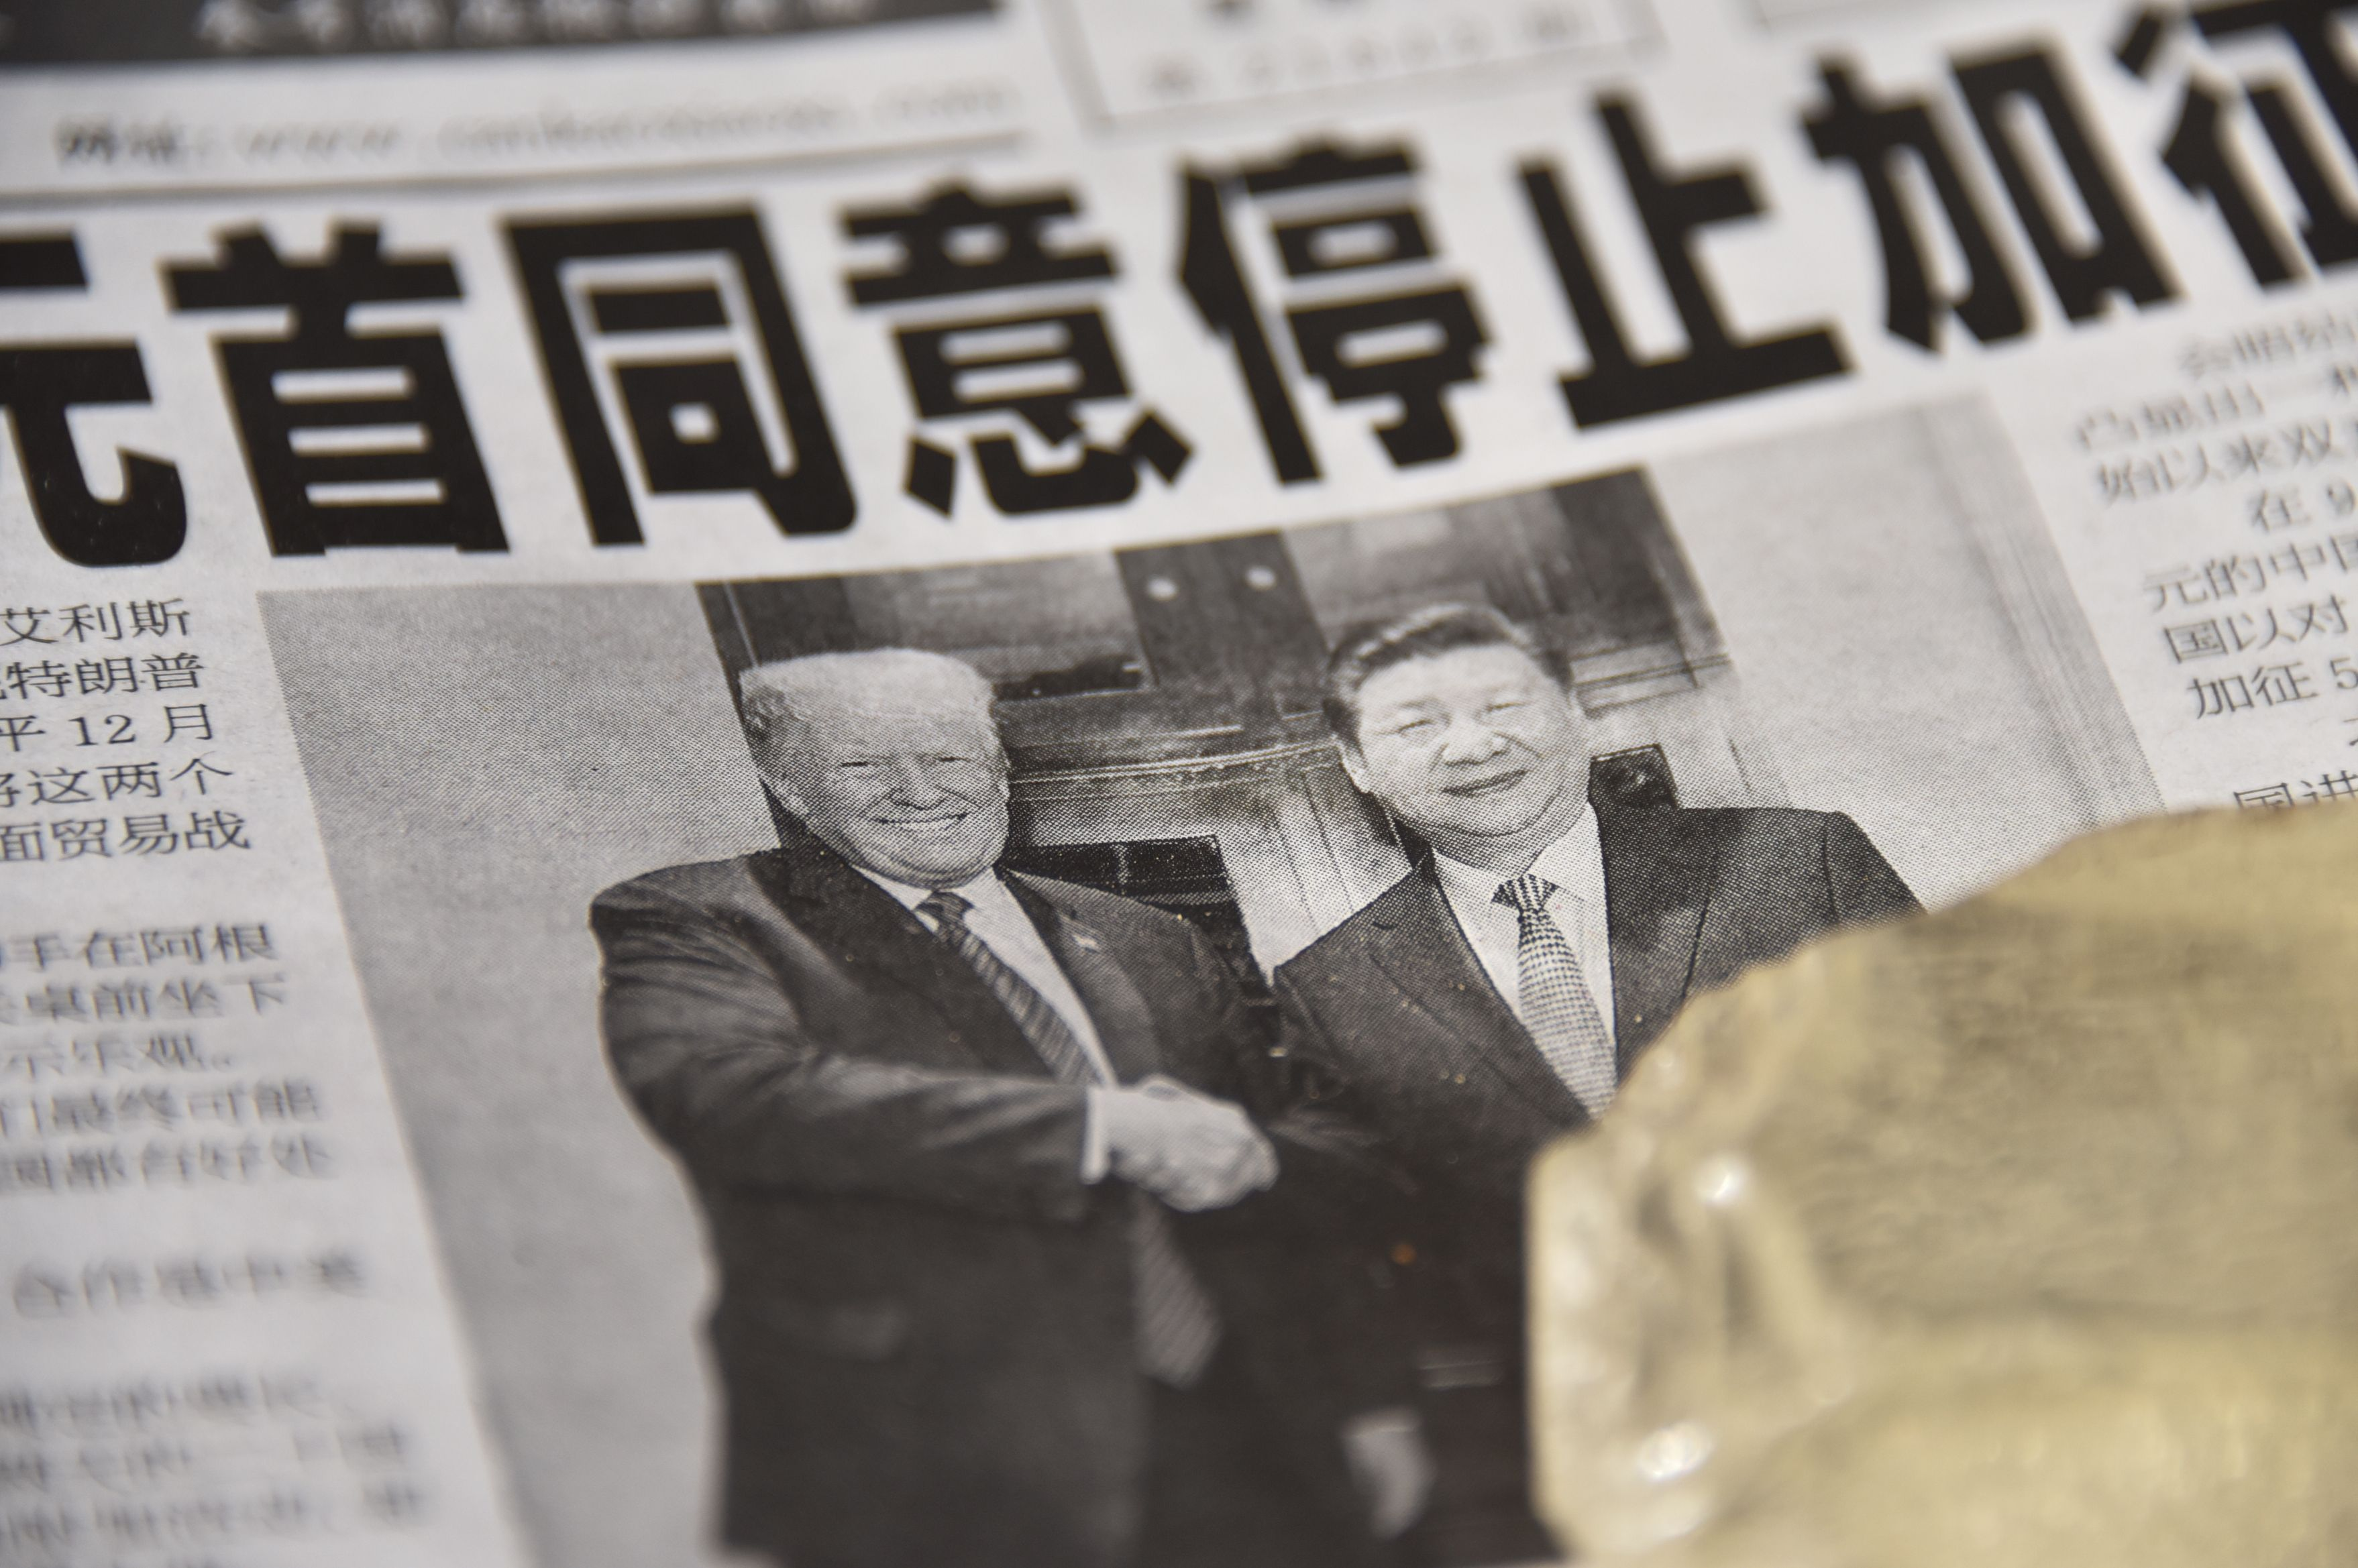 A newspaper featuring a front page story about the meeting between US President Donald Trump and Chinese President Xi Jinping as seen at a news stand in Beijing on December 3, 2018. (GREG BAKER/AFP via Getty Images)